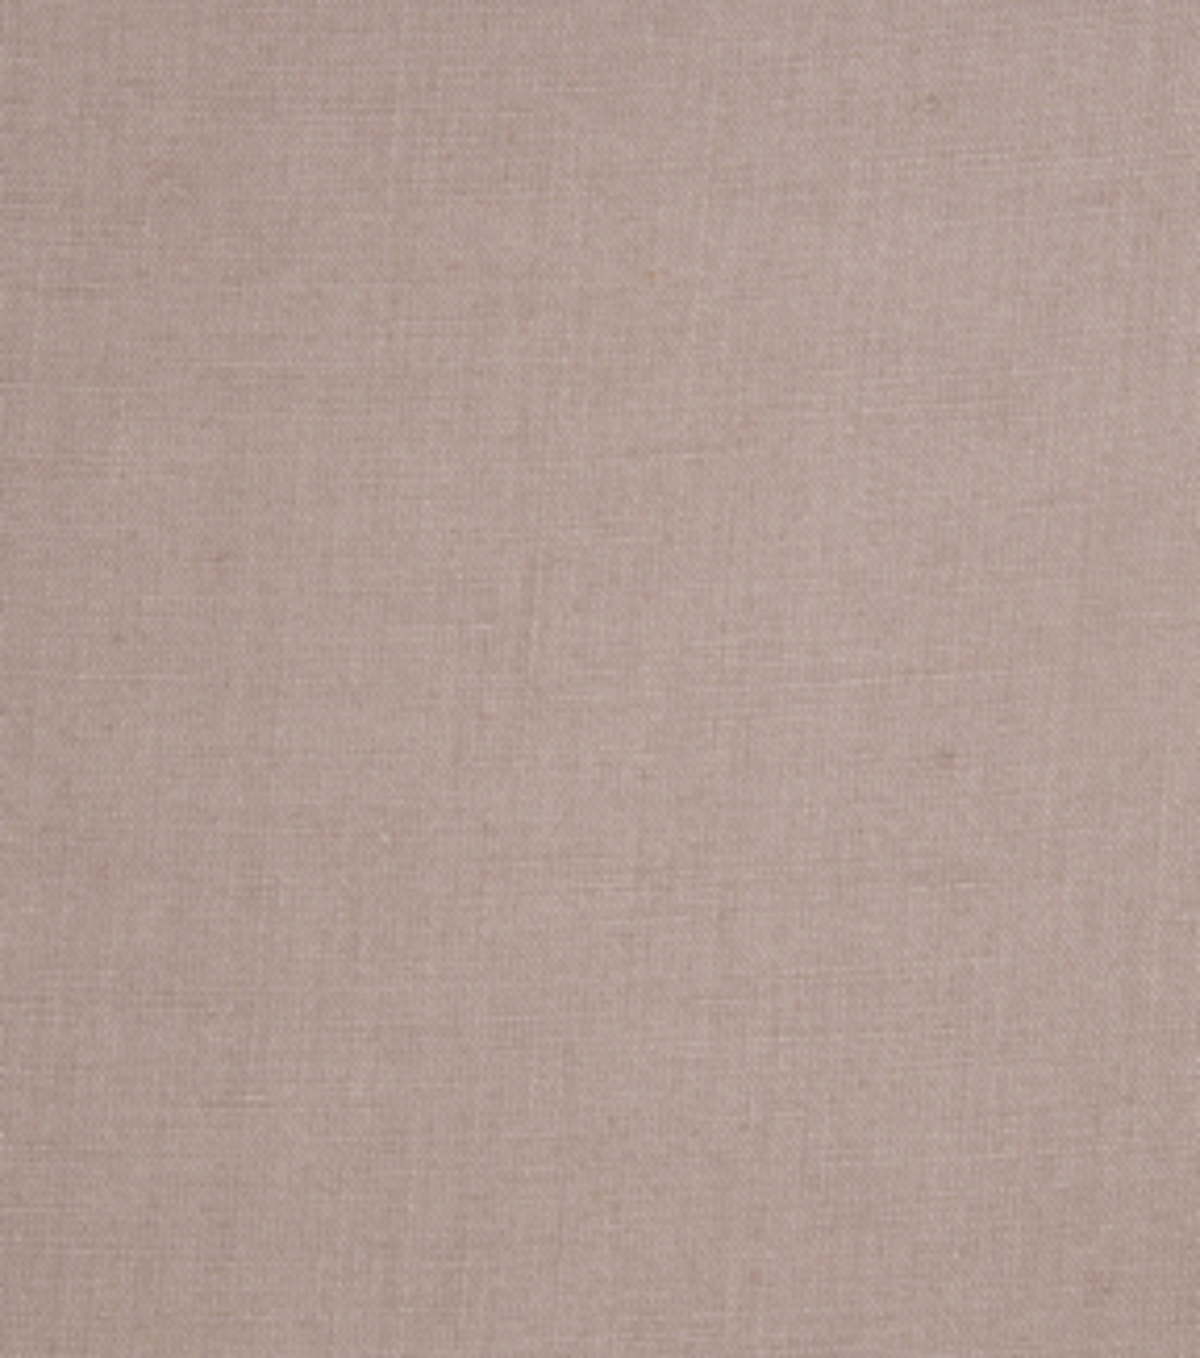 Home Decor 8\u0022x8\u0022 Fabric Swatch-Signature Series Sigourney Wisteria